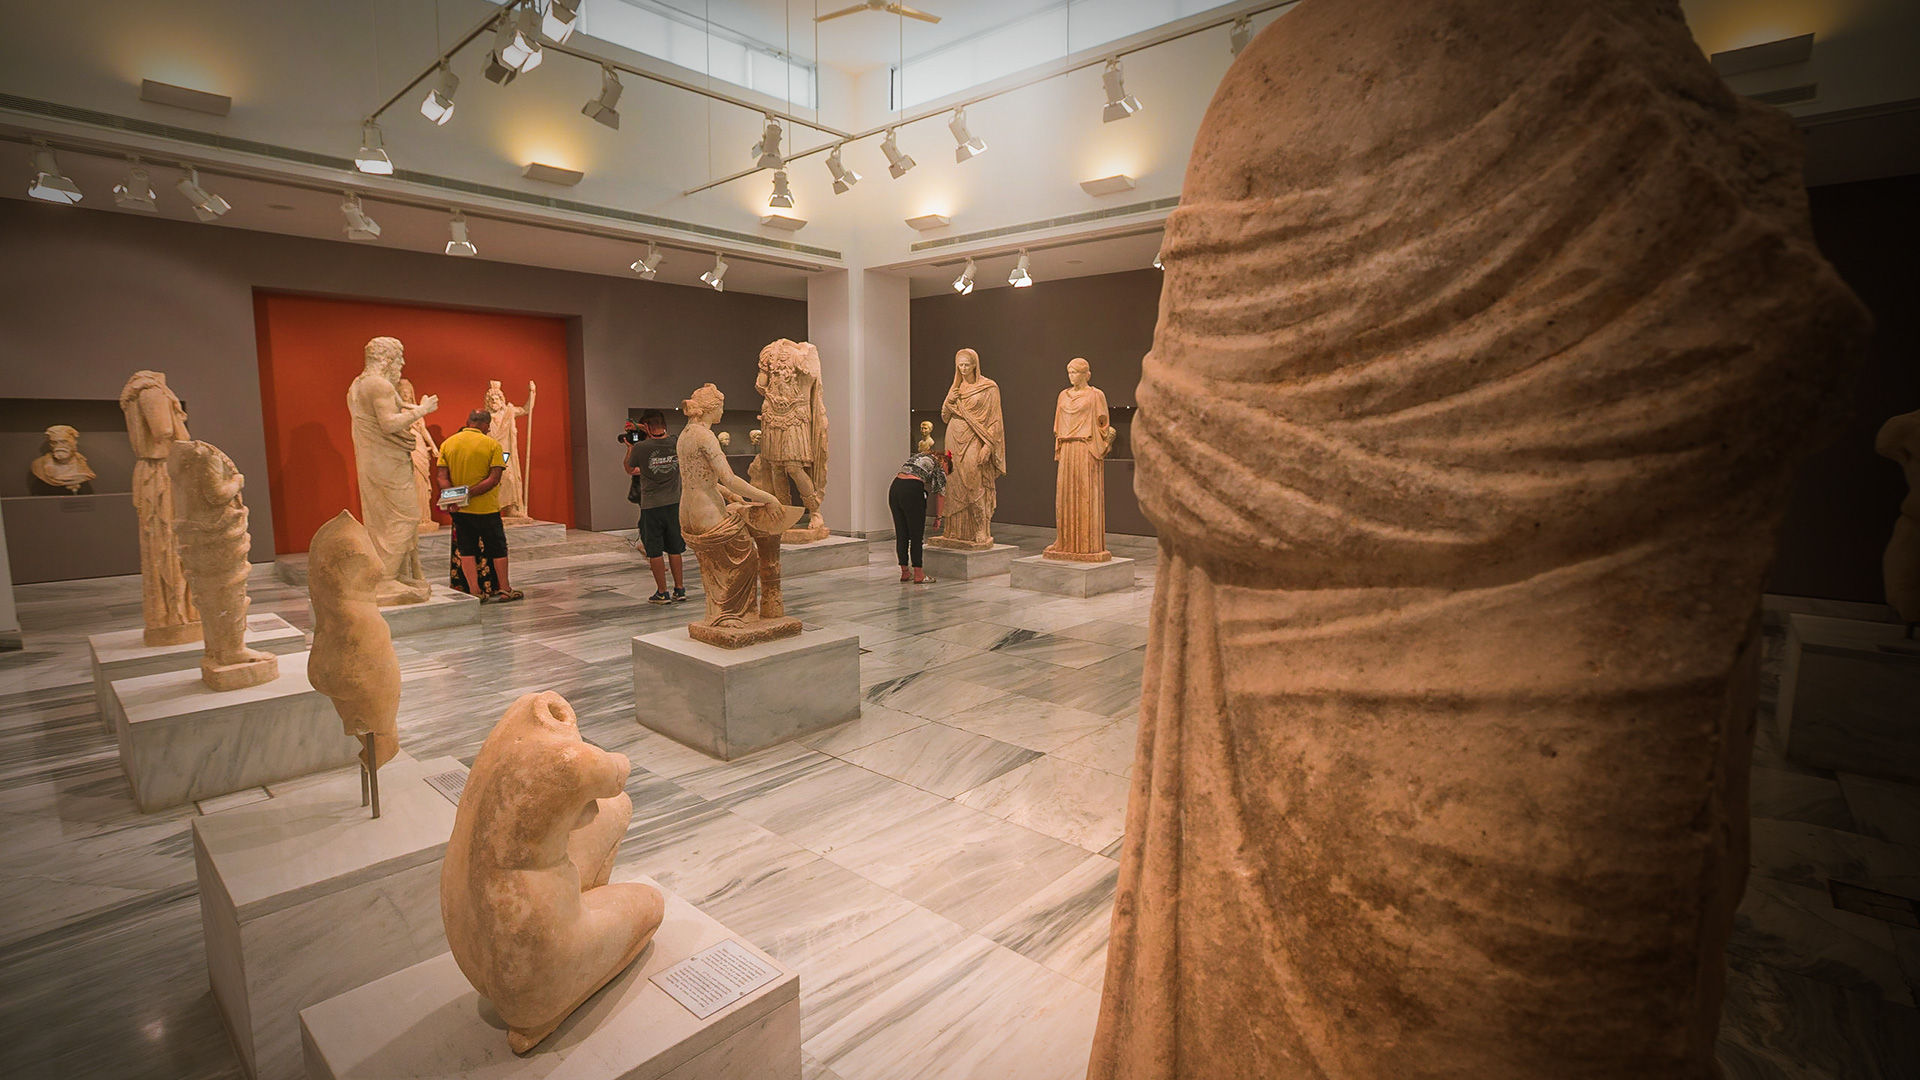 Roman Collection of the Heraklion Archaeological Museum, Crete